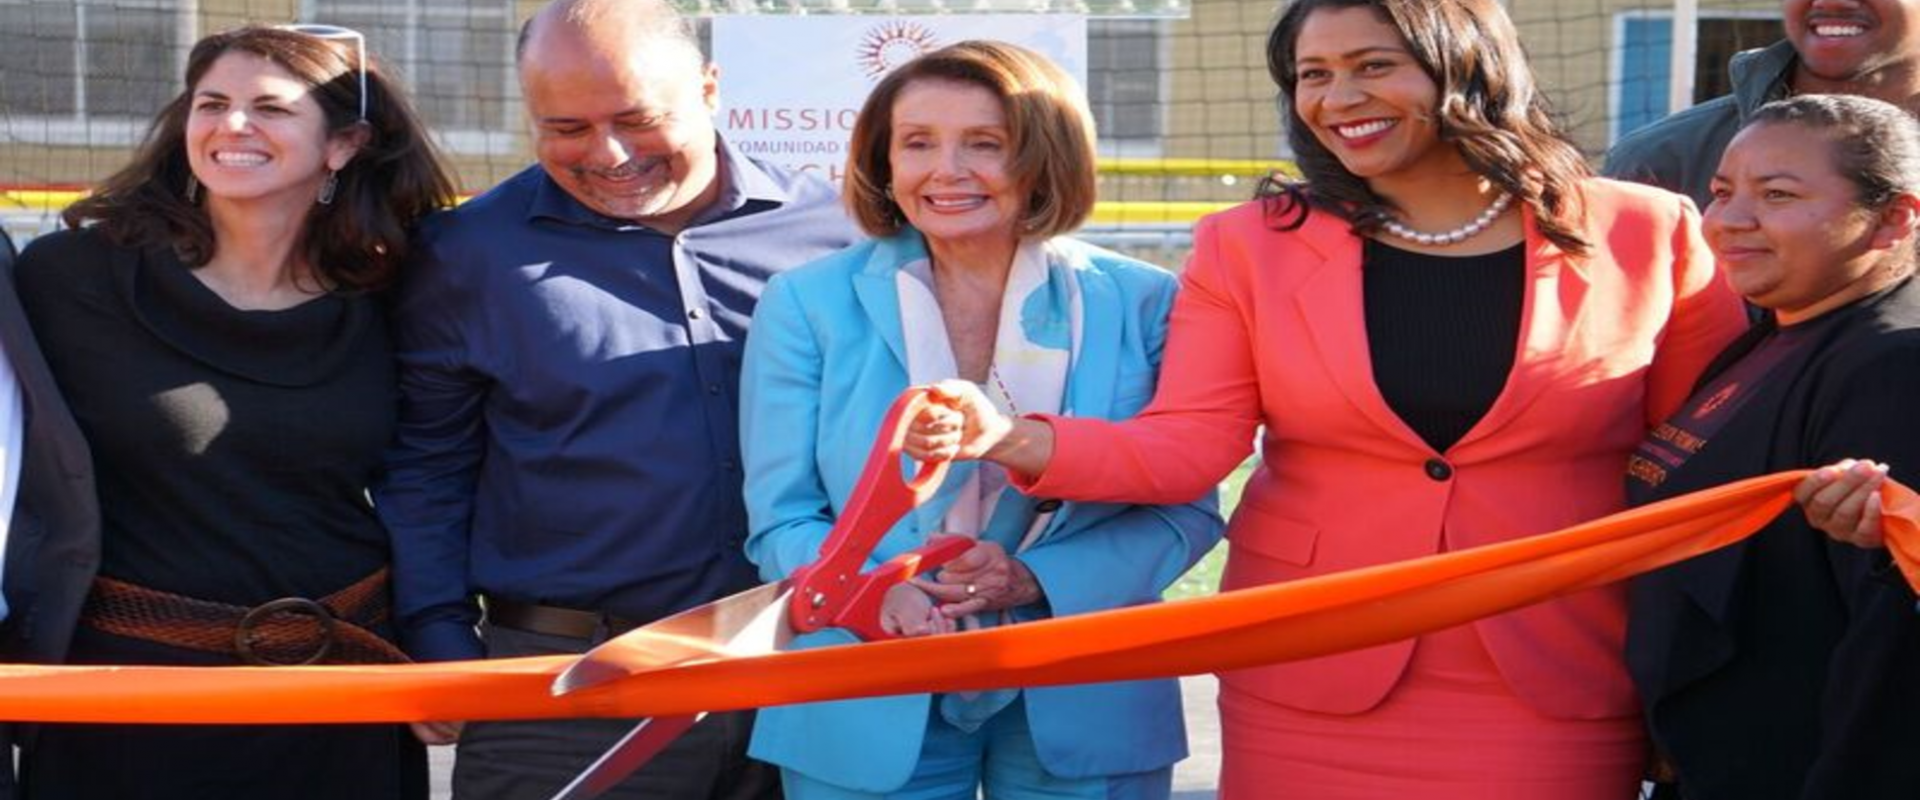 Congresswoman Pelosi joins Mayor London Breed, Supervisor Hillary Ronen, and community leaders celebrate Mission Promise Neighborhood's $6 million federal grant to close the academic and opportunity gap by boosting college and career pipelines at five new